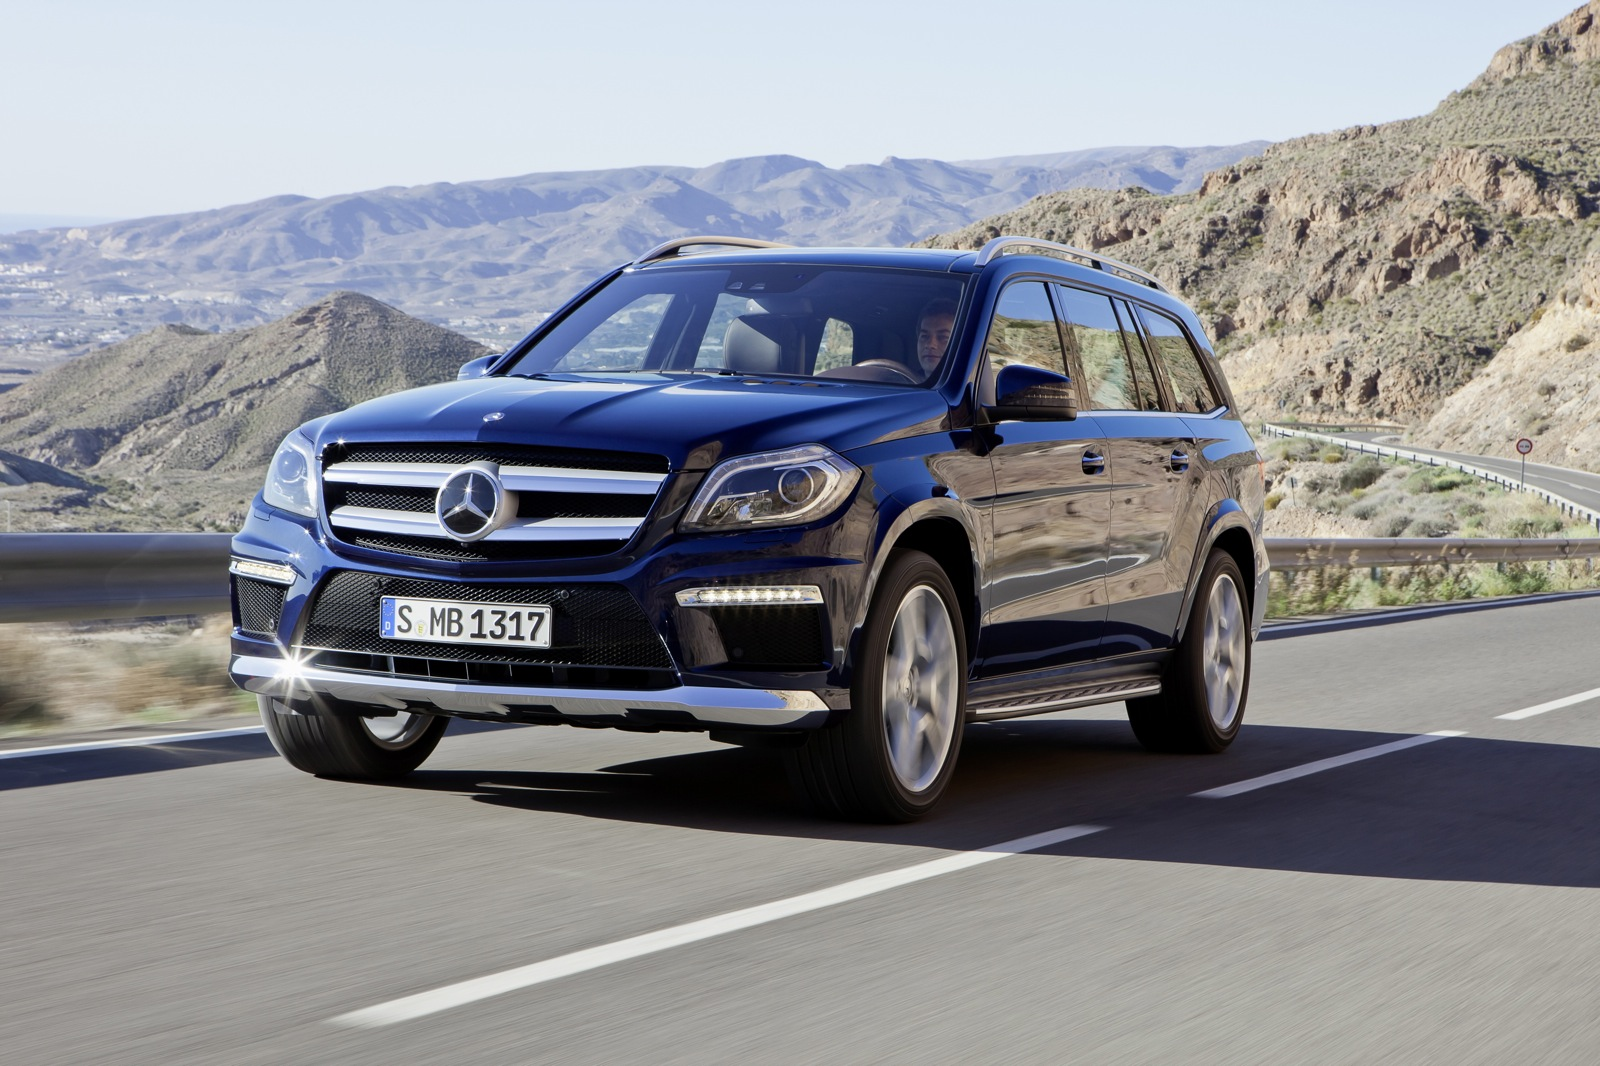 2013 mercedes benz gl class first drive and video road test. Black Bedroom Furniture Sets. Home Design Ideas